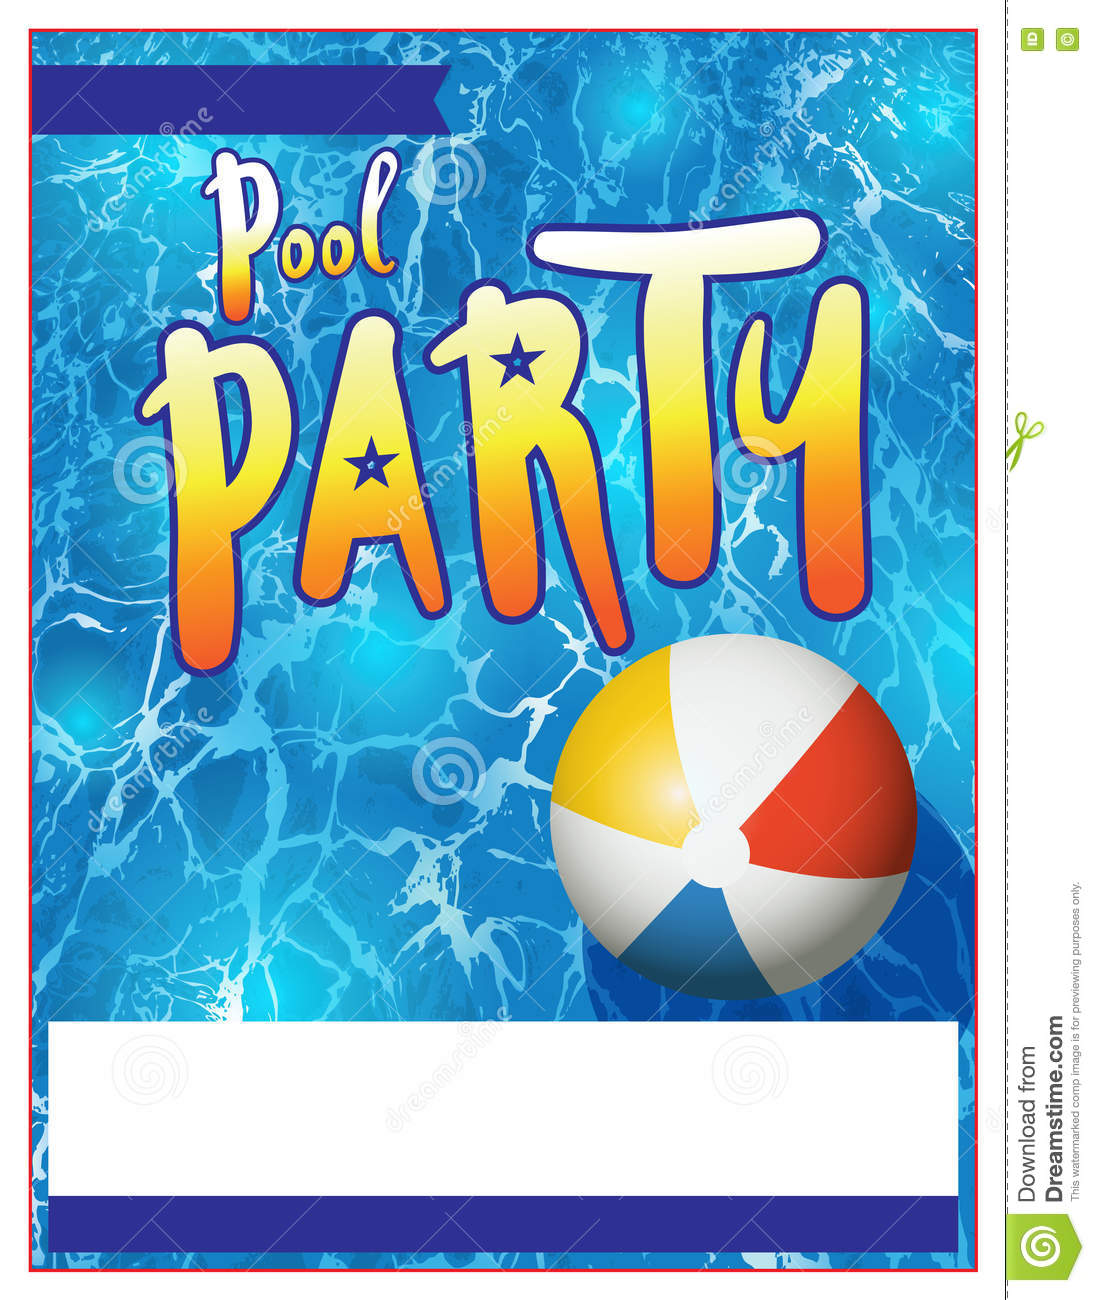 Pool Party Flyer Invitation Illustration Vector Image – Blank Pool Party Invitations